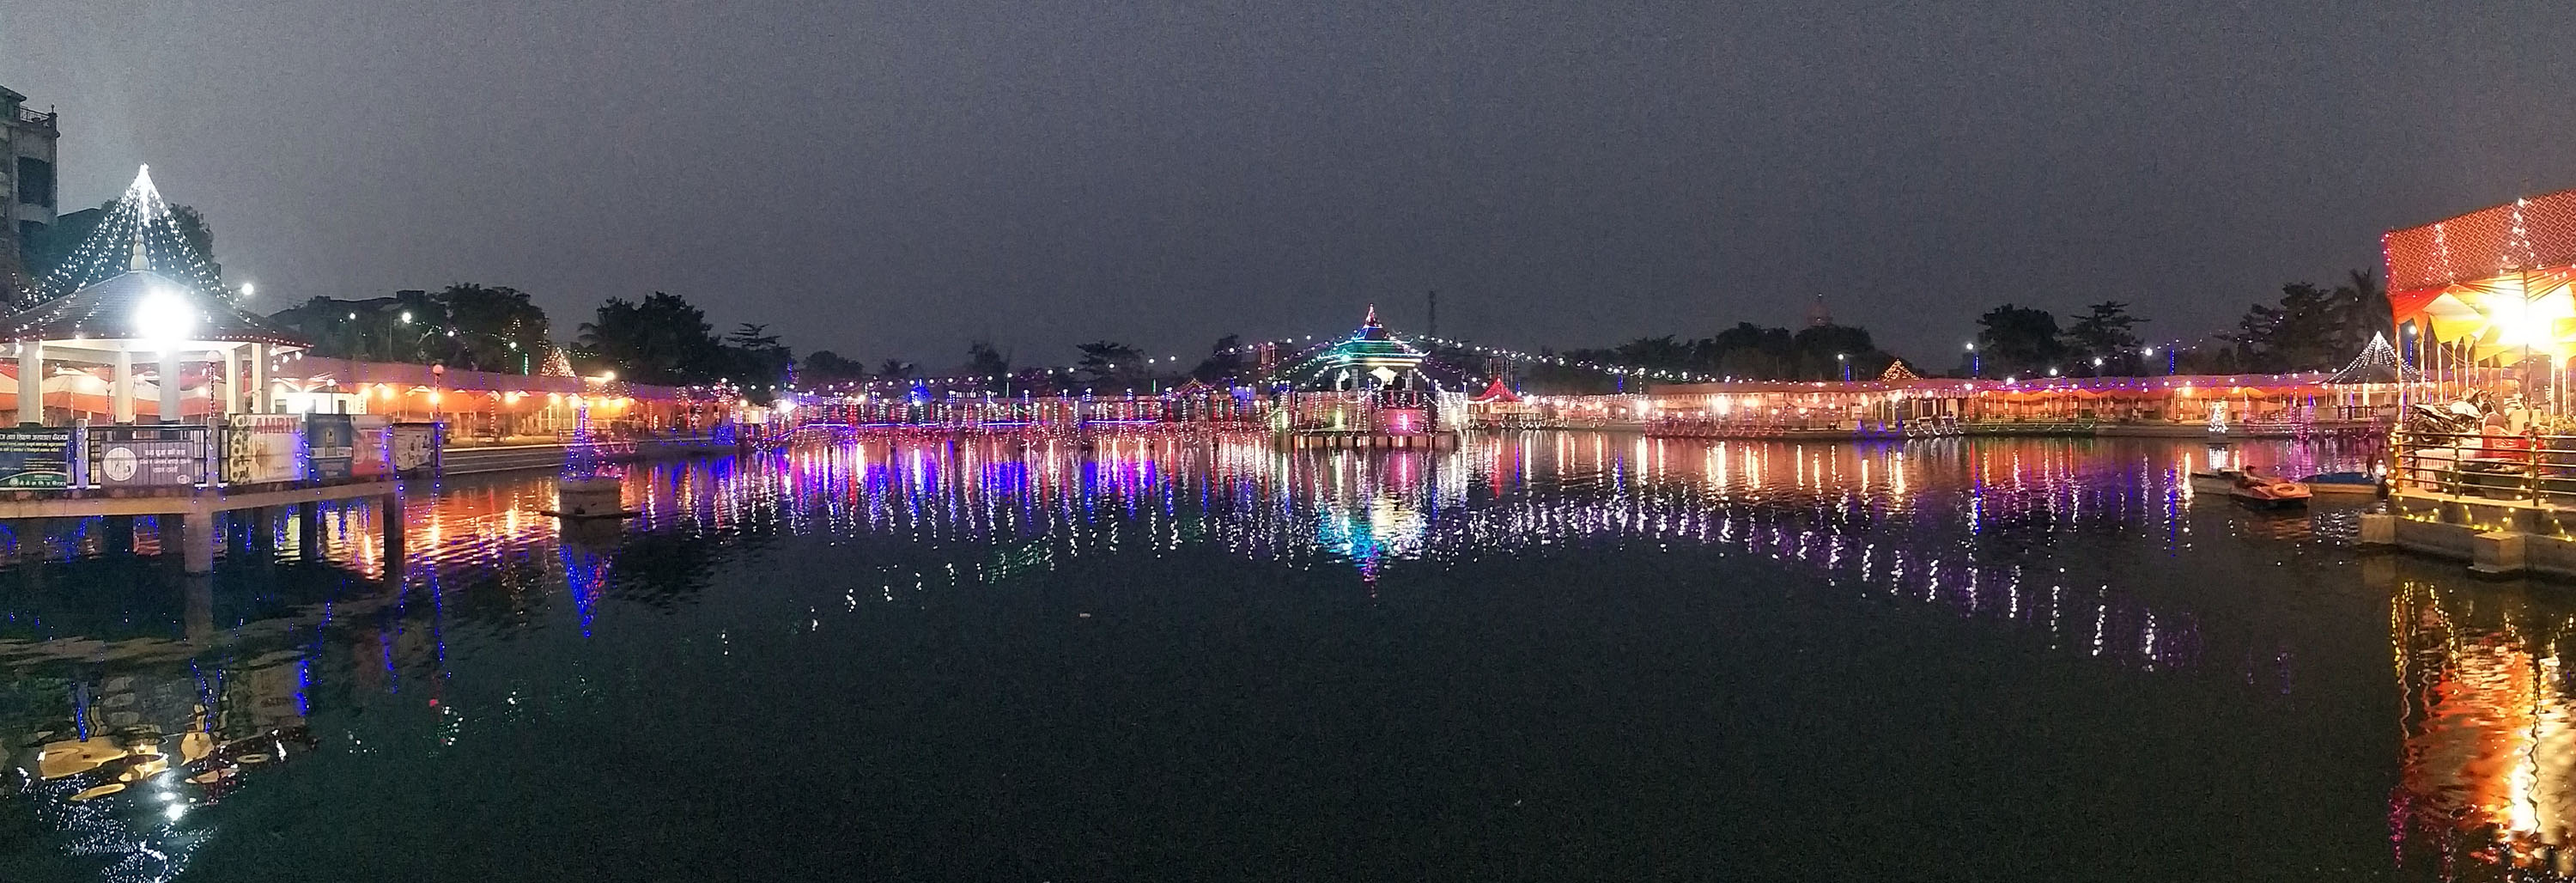 Decorative lights lit during the ongoing Chhath festival reflect over Ghadiarwa Pond in Birgunj, on Monday, November 12, 2018. More than Rs 1.4 million has been invested to decorate the pond premises for the festival, informed Chhath Management Commitee Secretary Lakhan Lal Sah. Photo: Ram Sarraf/THT